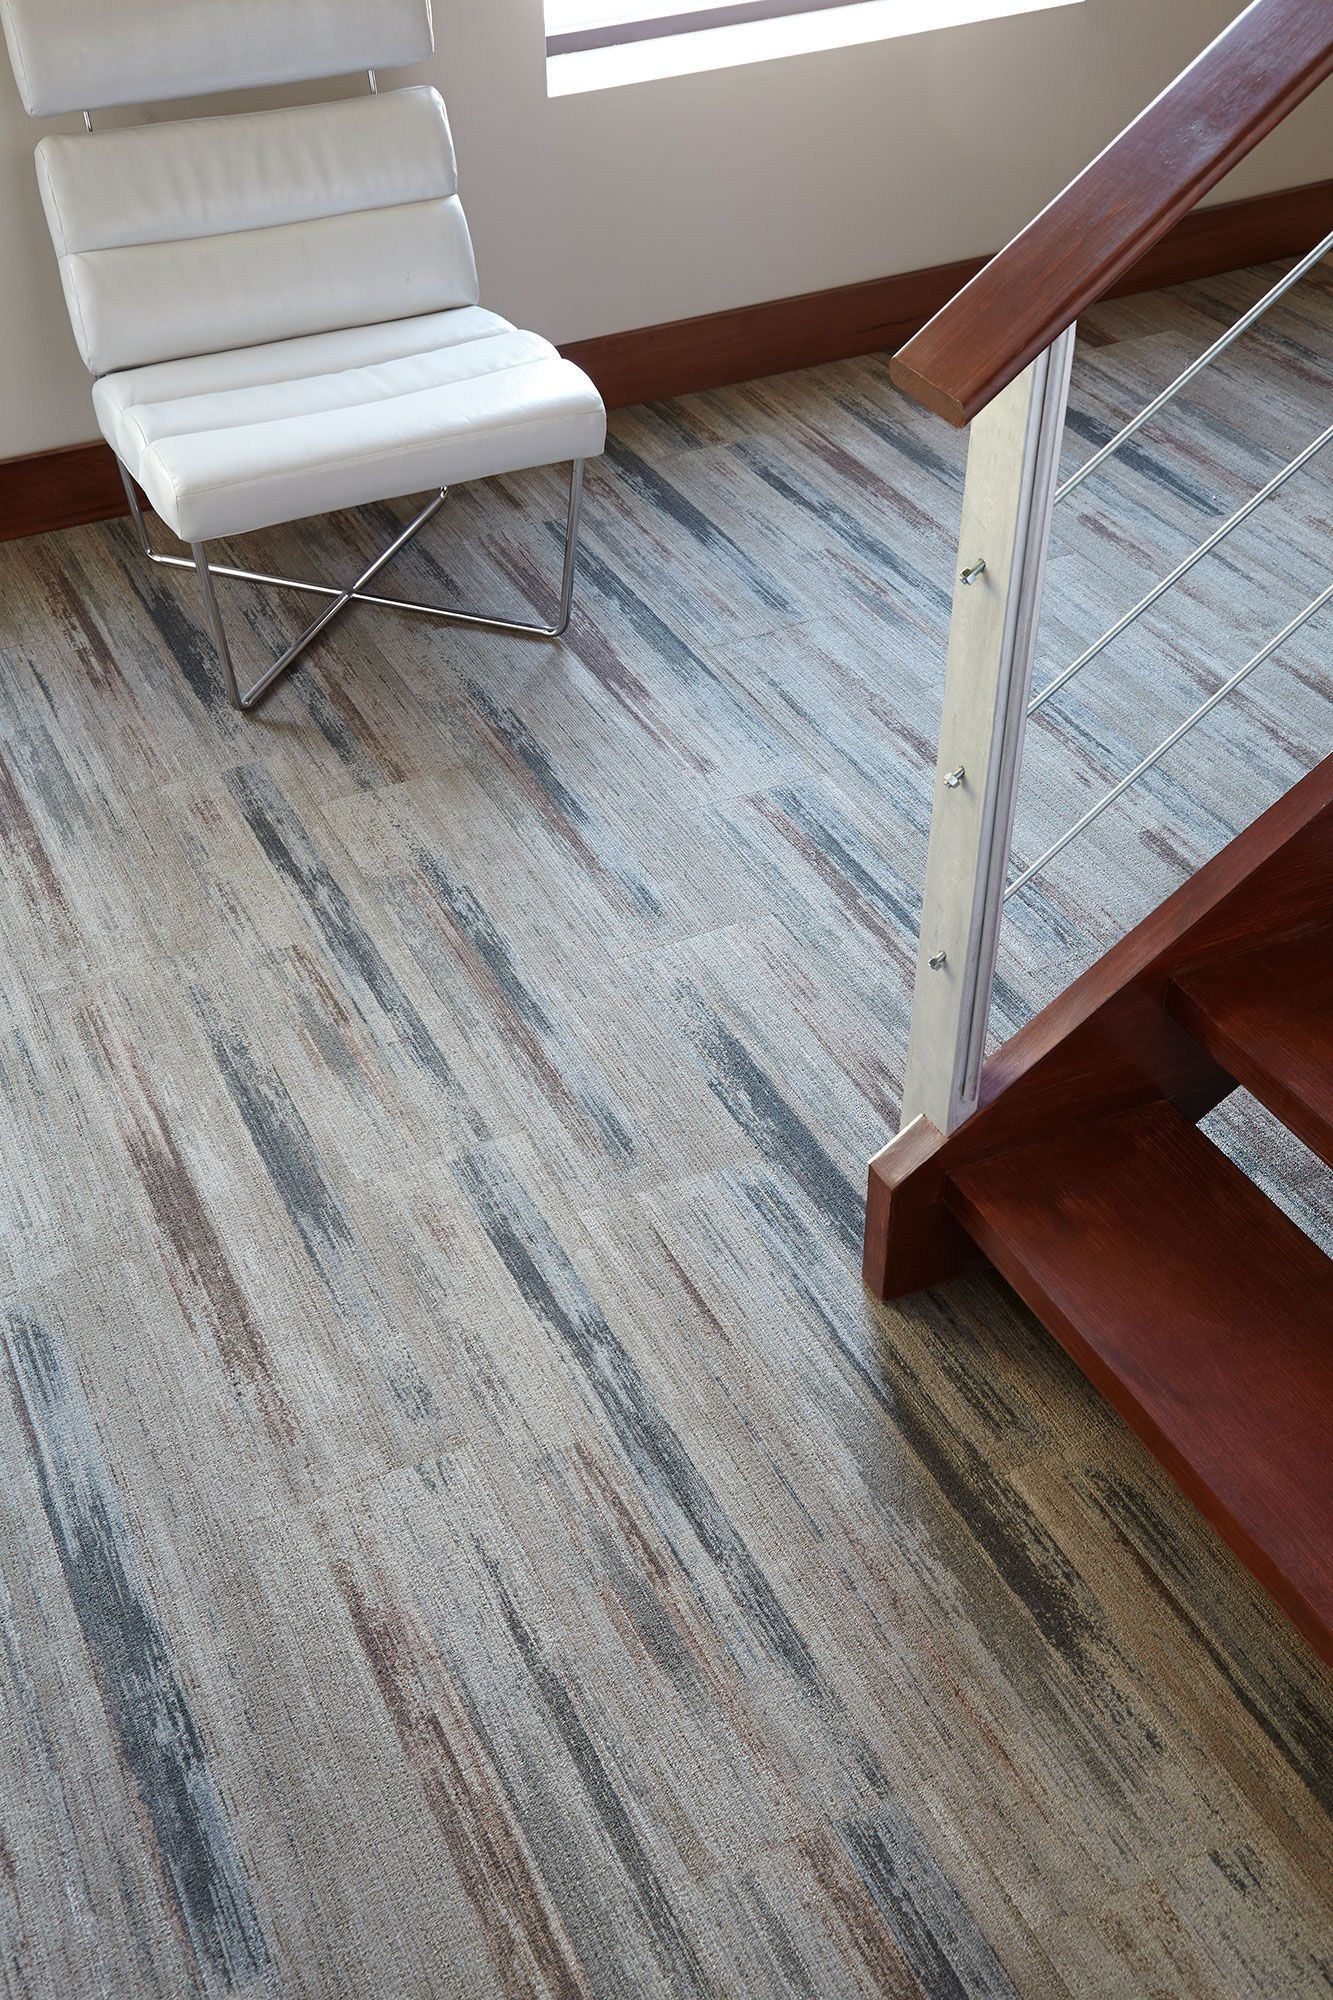 Harley color carpet tiles - Our Plank Installations Give Color Field An Added Dose Of Texture Highlighting Its Contrasting Colors Color Artplanksgymtilescarpetstexture